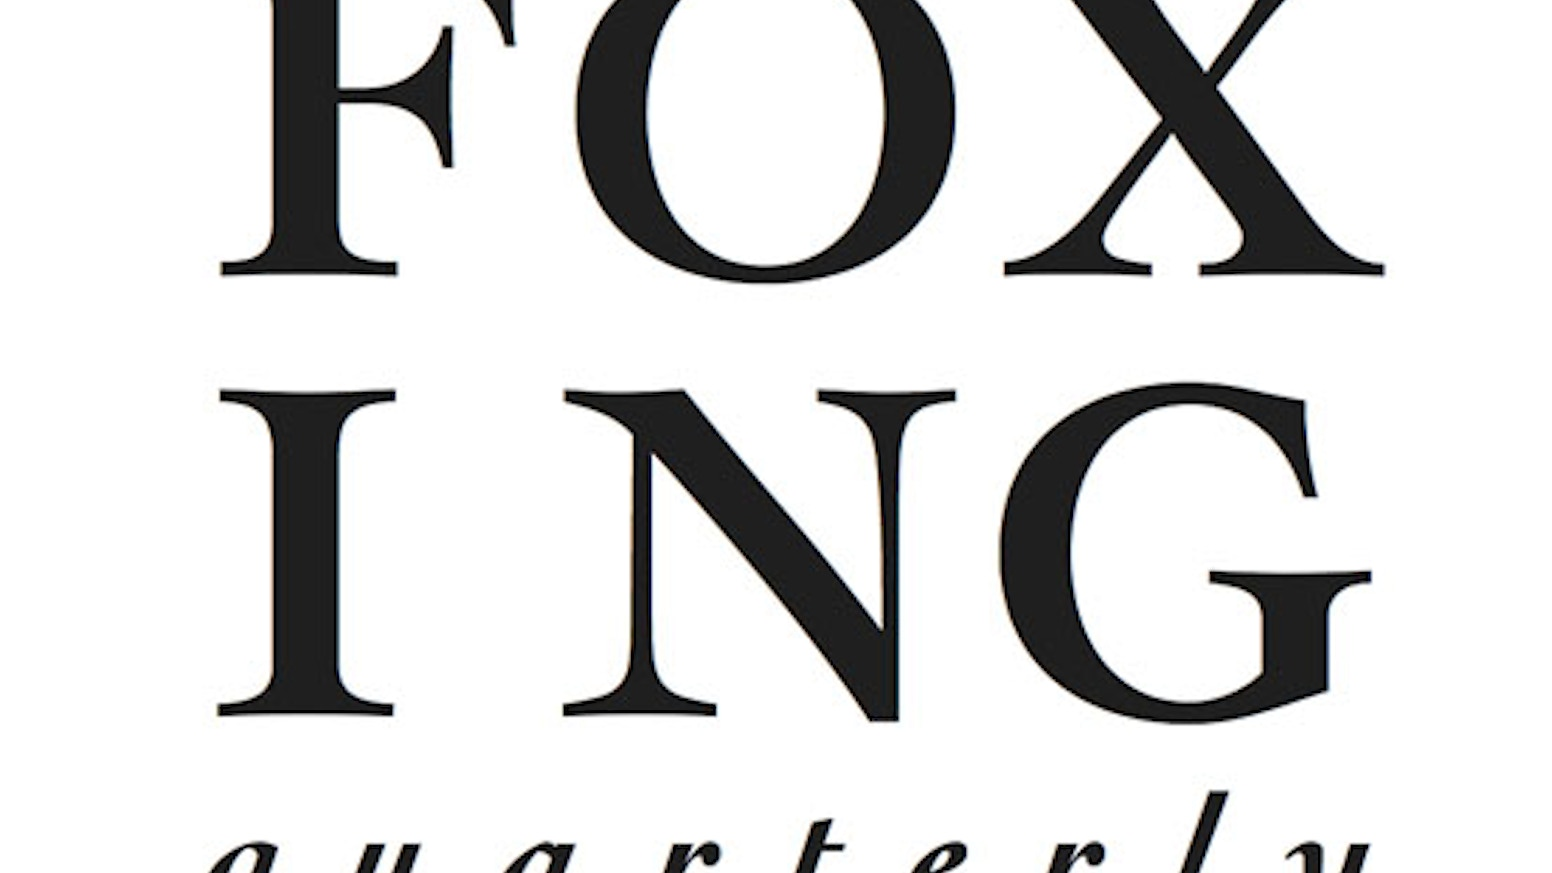 Foxing quarterly a literary journal by daniel mejia deleted foxing quarterly provides a print only creative space for writers and artists biocorpaavc